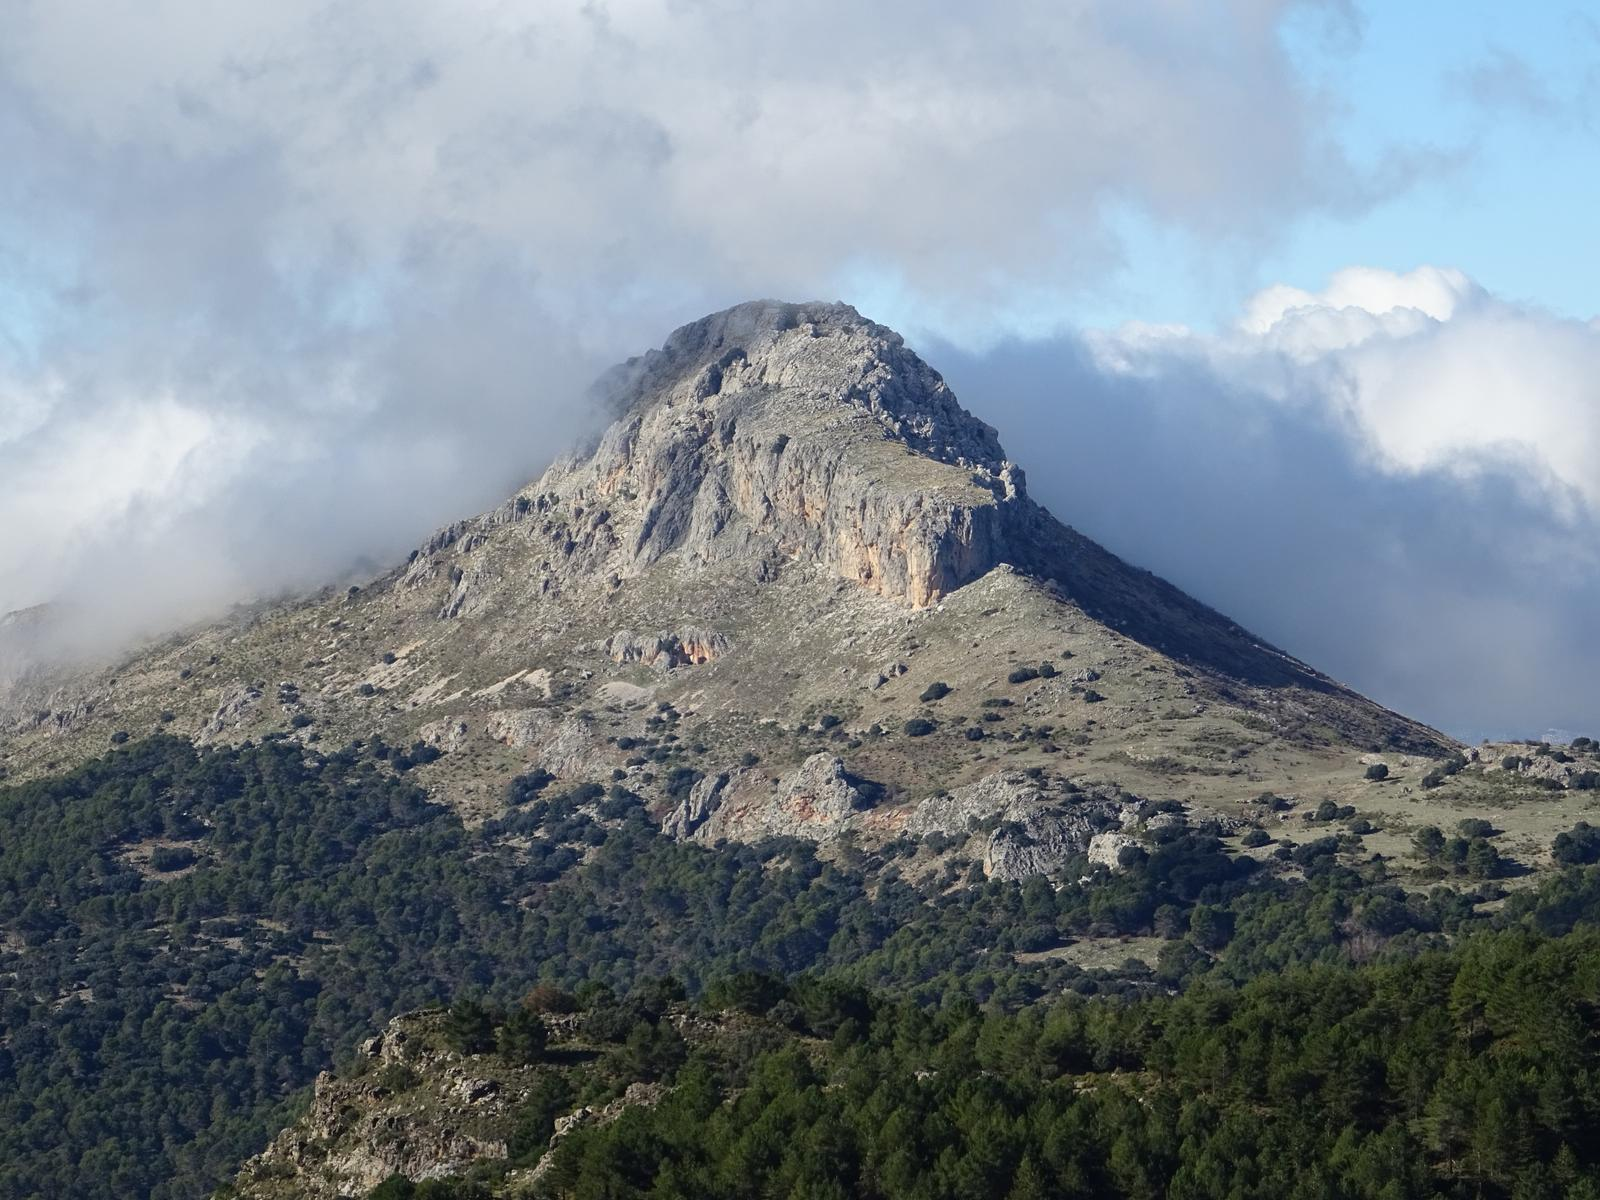 Photo of Regreso al Cerro del Corzo - P.N. Sierra de Huétor